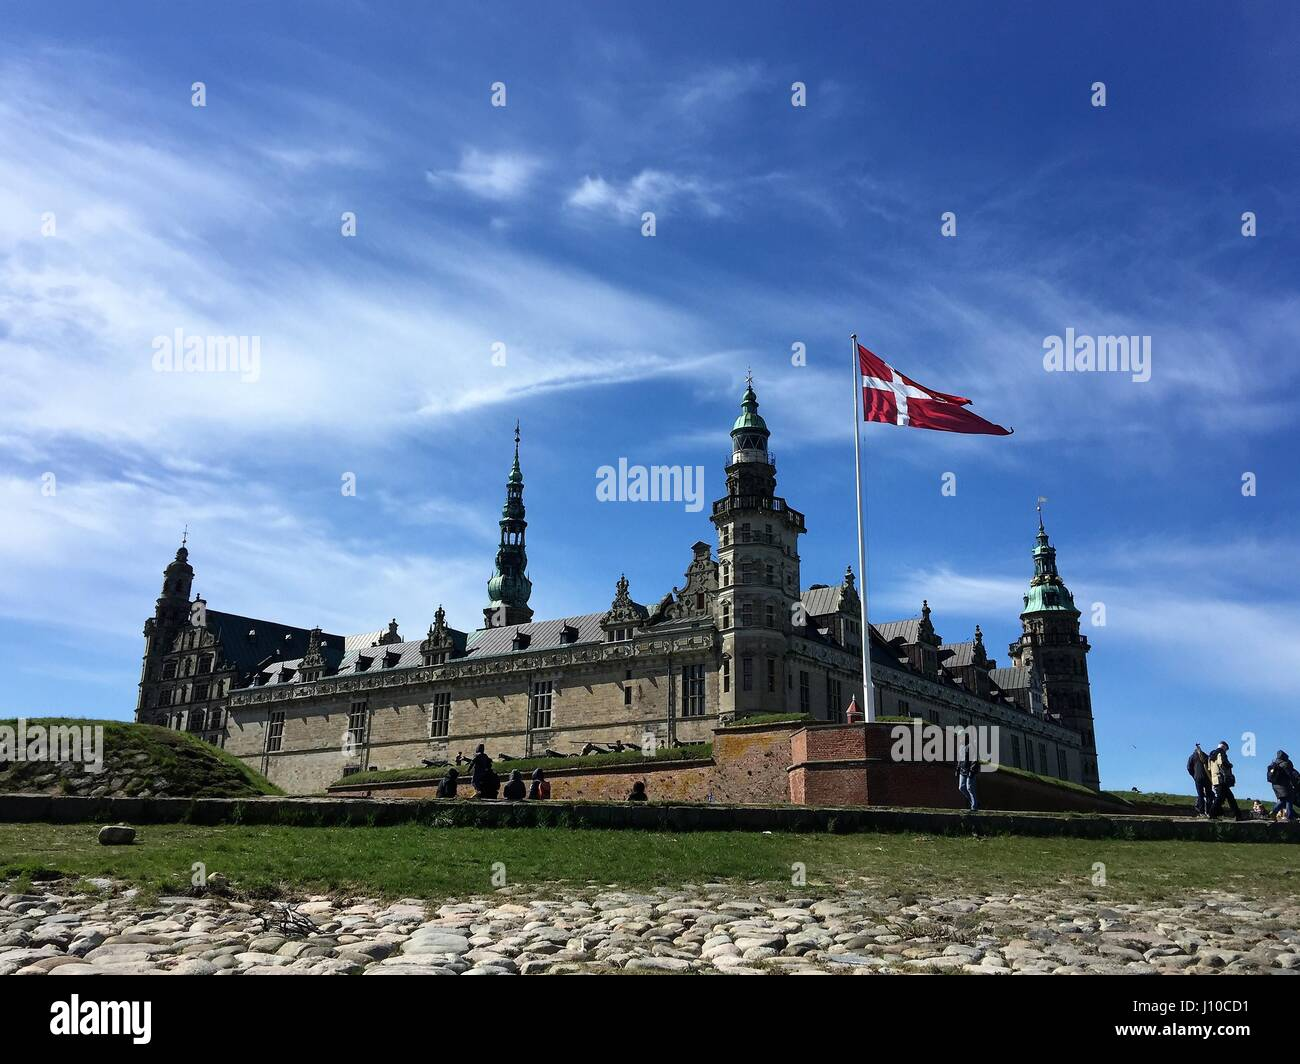 Elsinore, Denmark. 16th Apr, 2017. Cannons are fired with 27 shots as a salute to the Queen Margrethe II of Denmark, - Stock Image